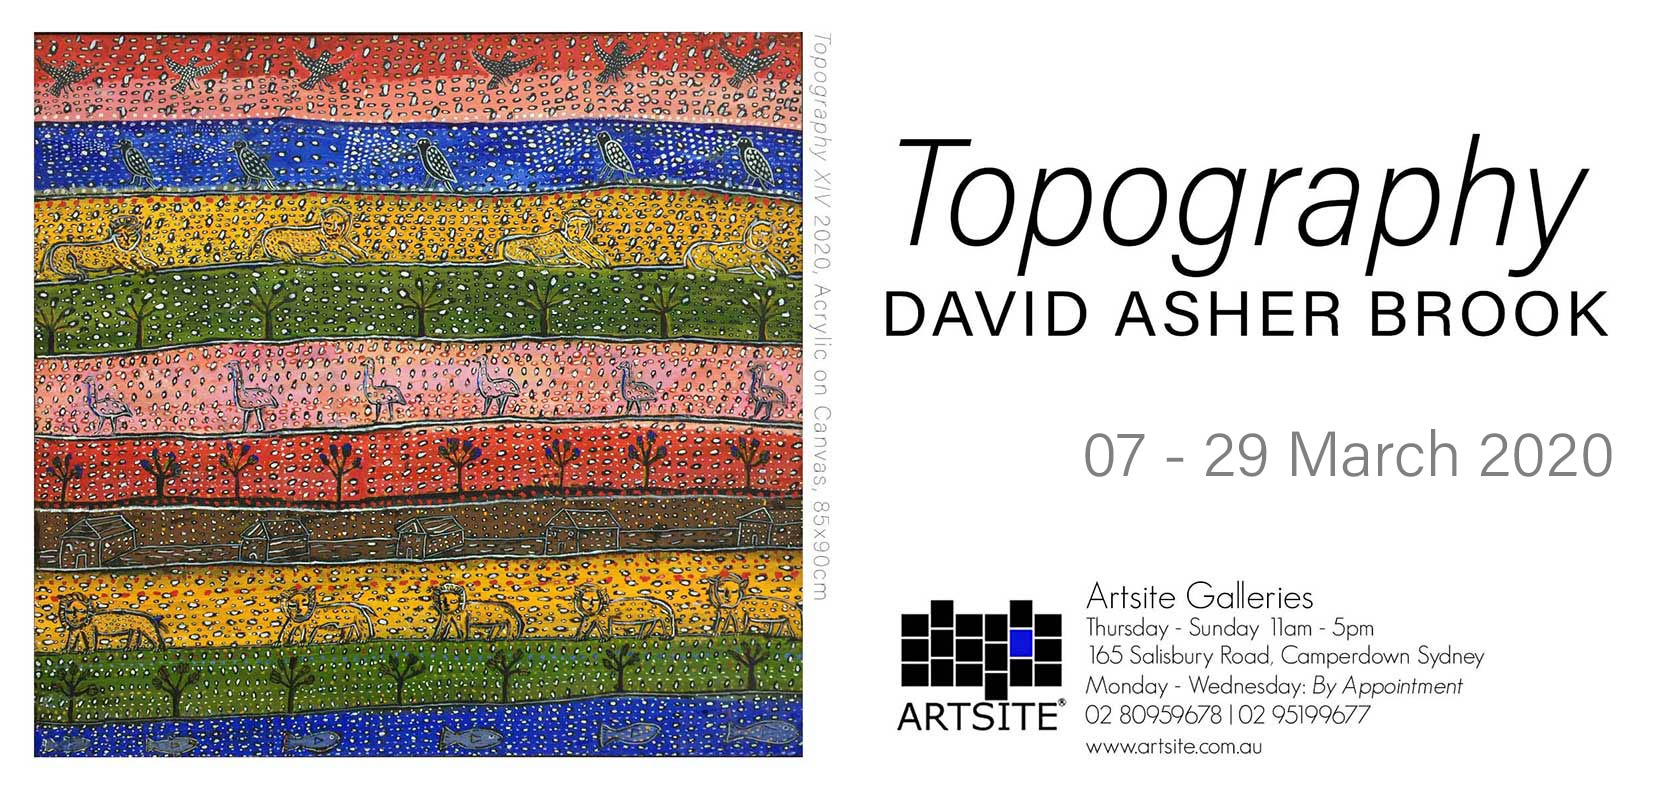 David Asher Brook Solo Exhibition at Artsite Gallery 07-28 March 2020